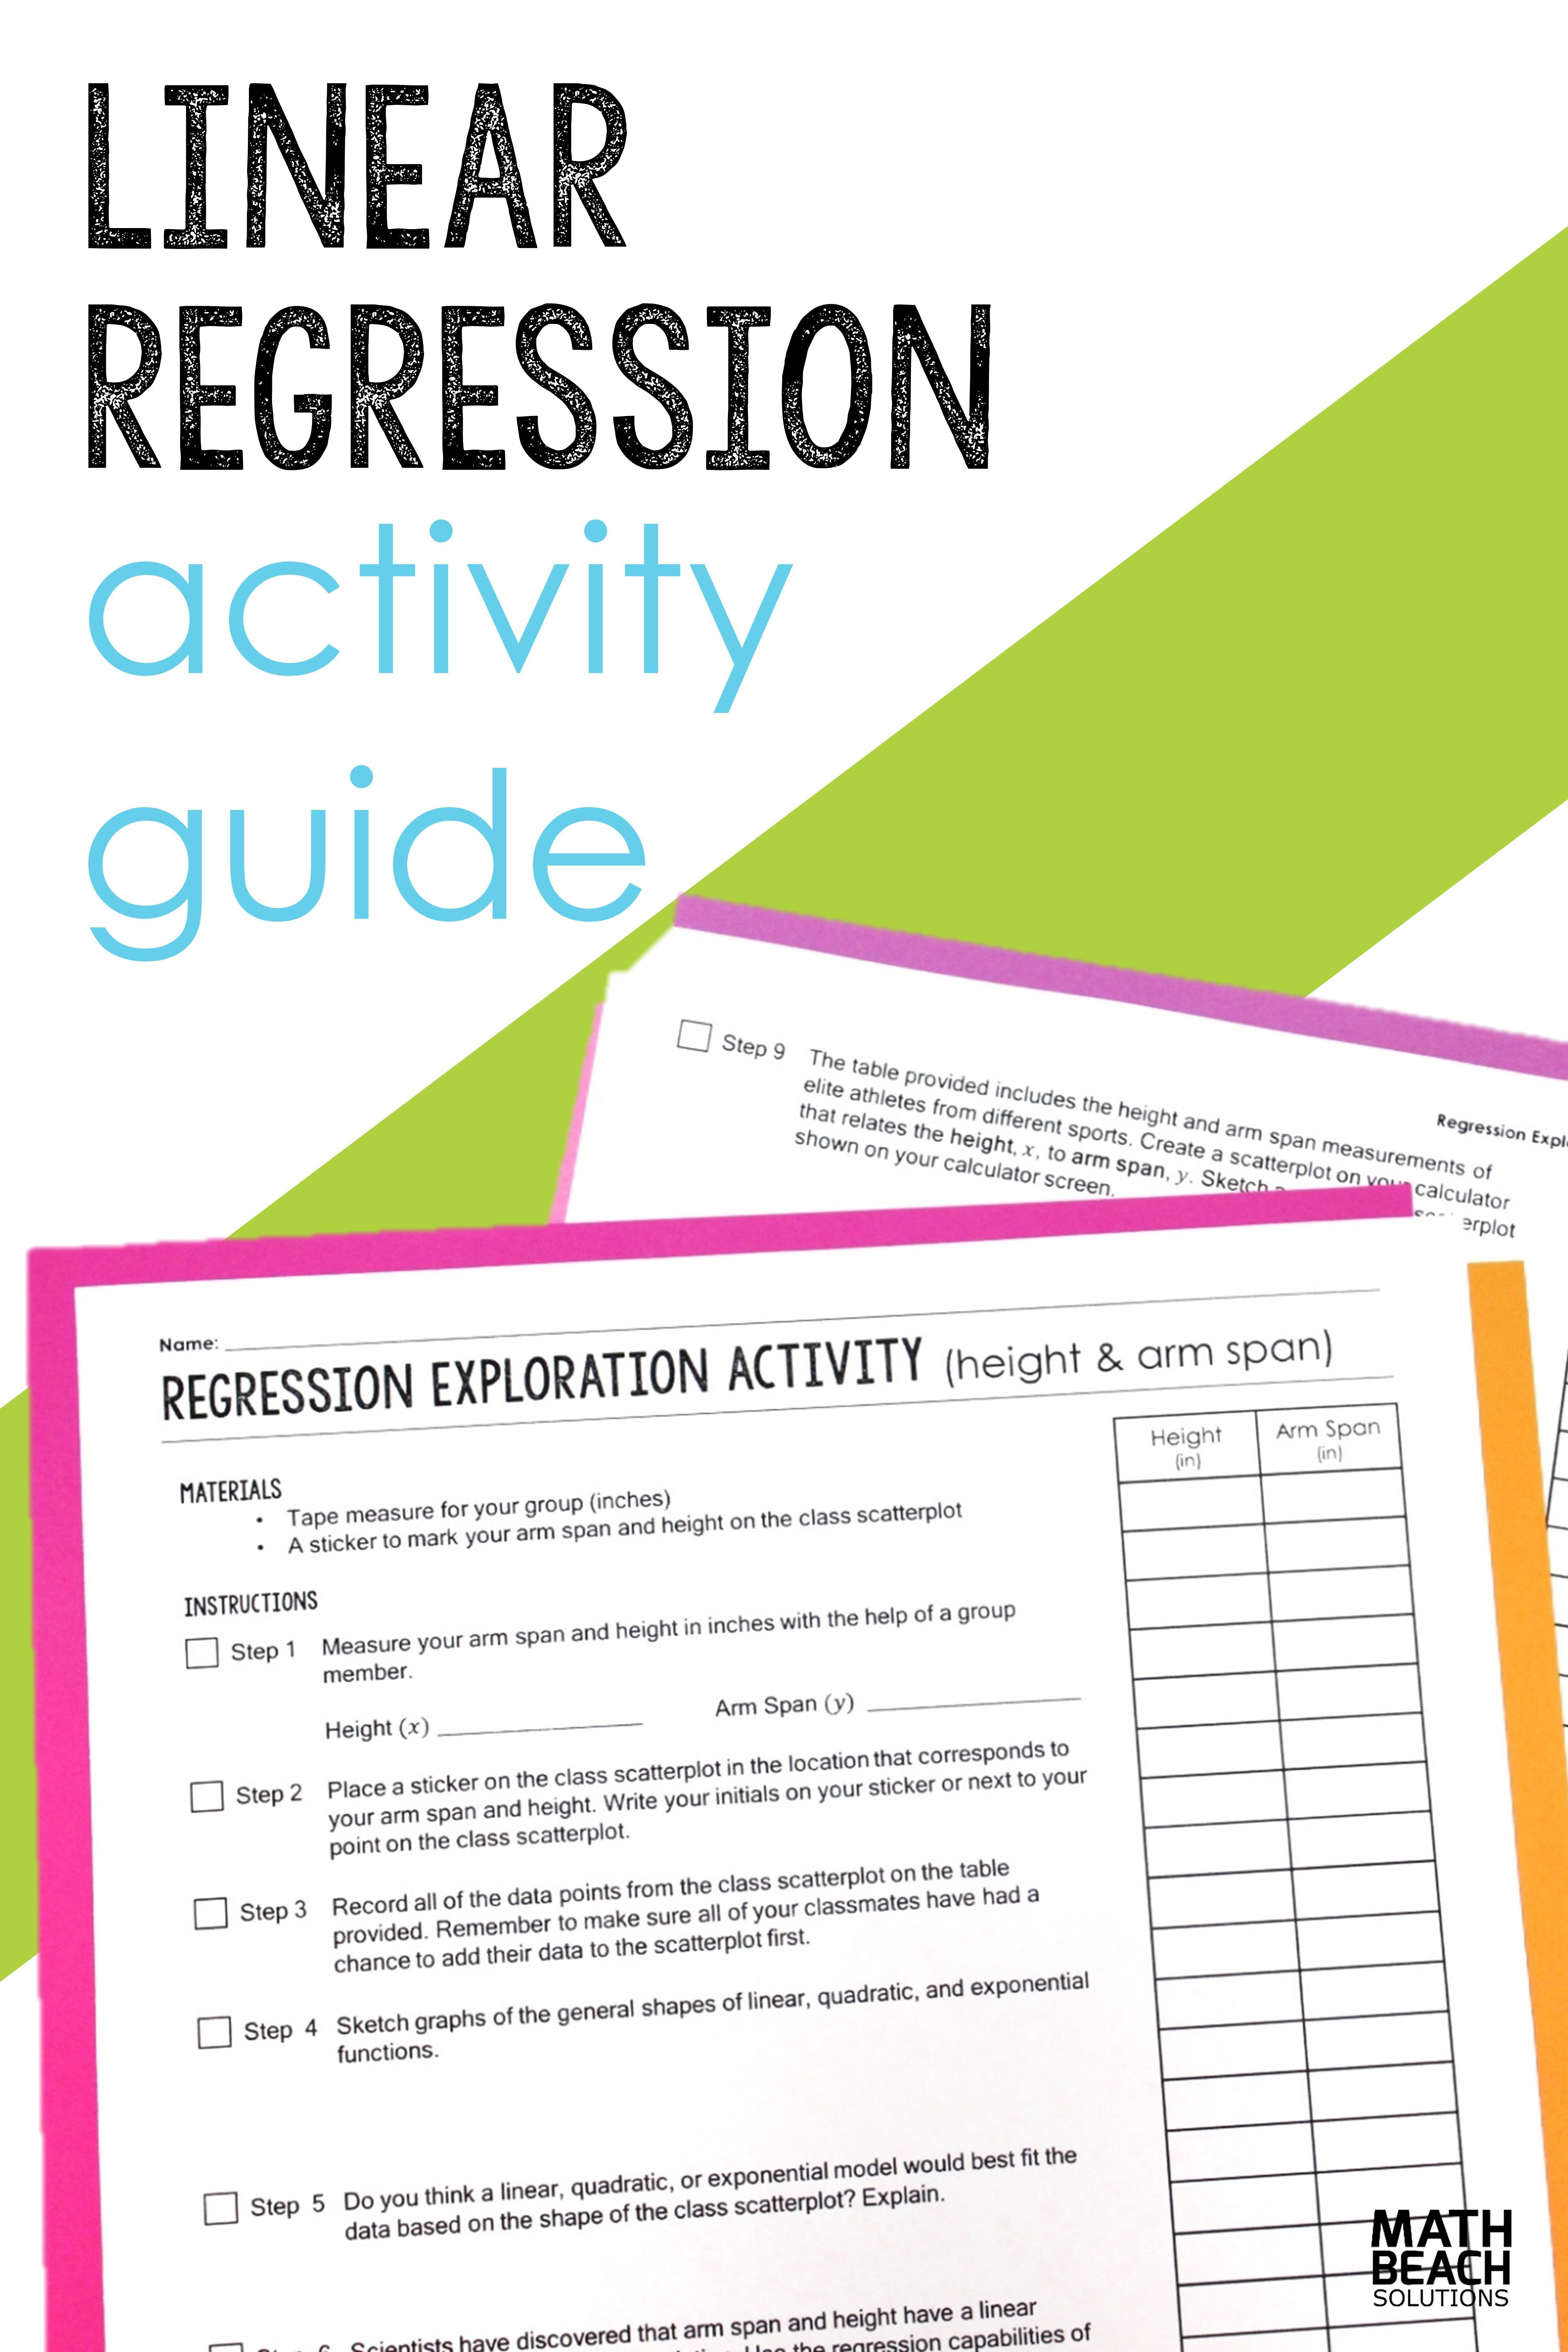 Linear Regression Exploration Class Activity Guide